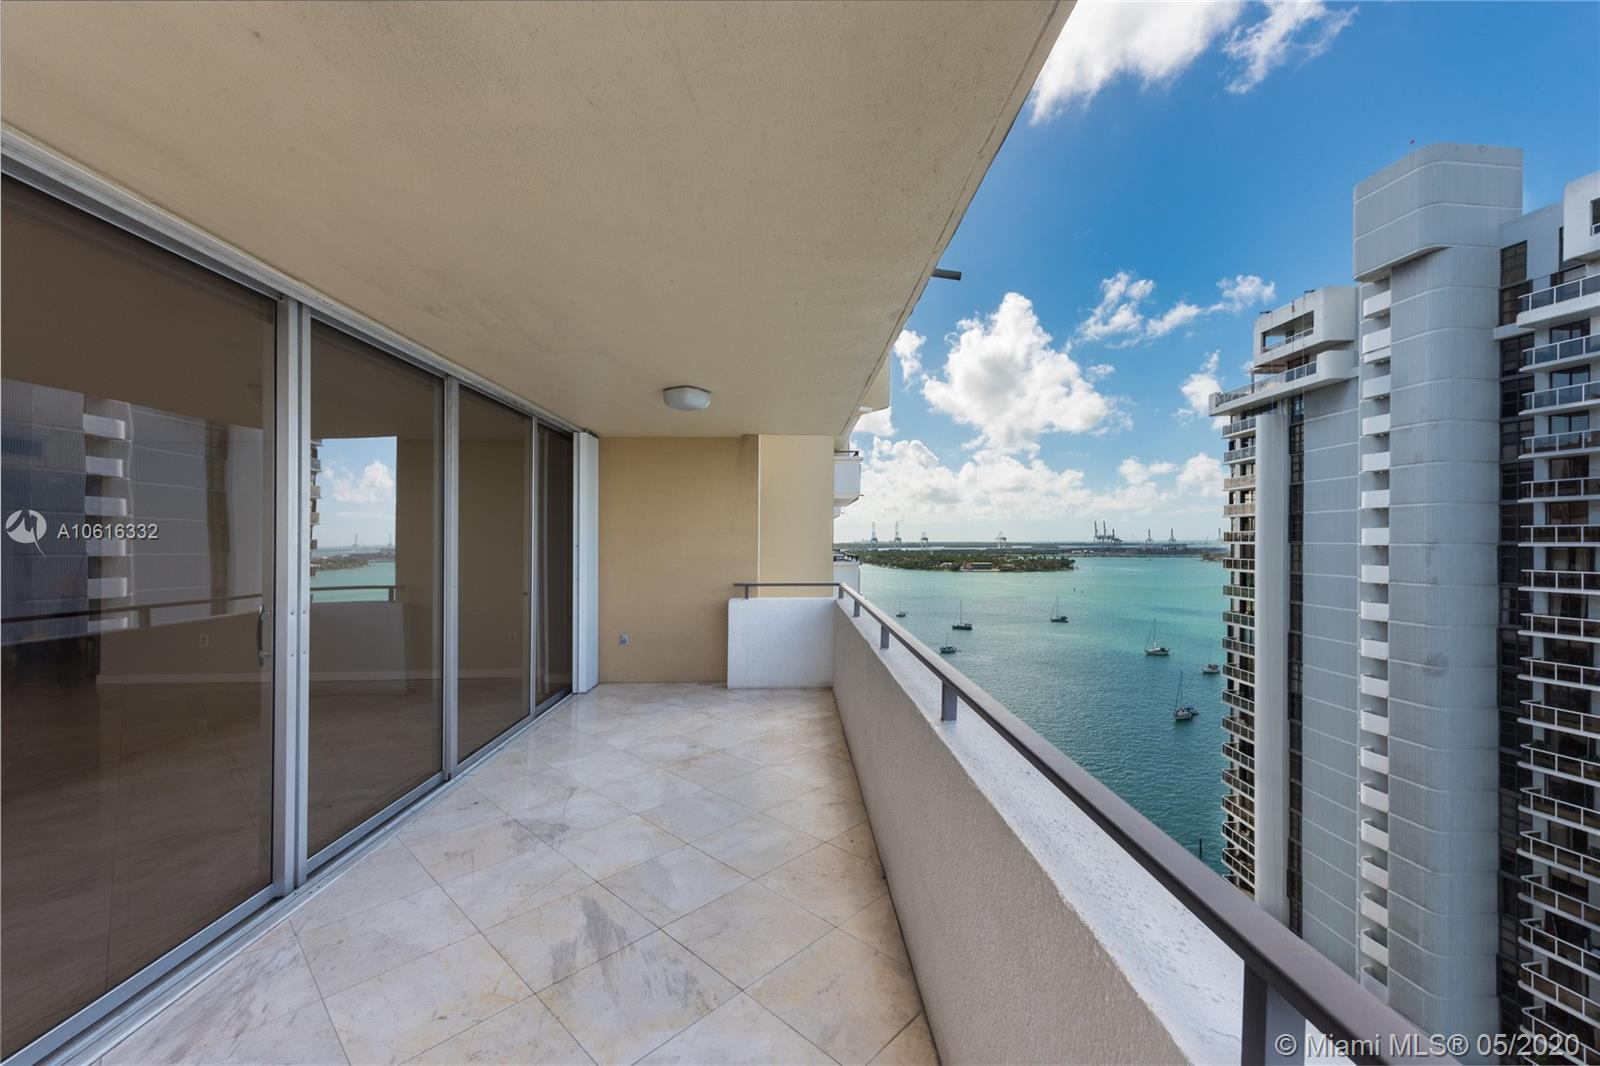 11  ISLAND AVE #2011 For Sale A10616332, FL